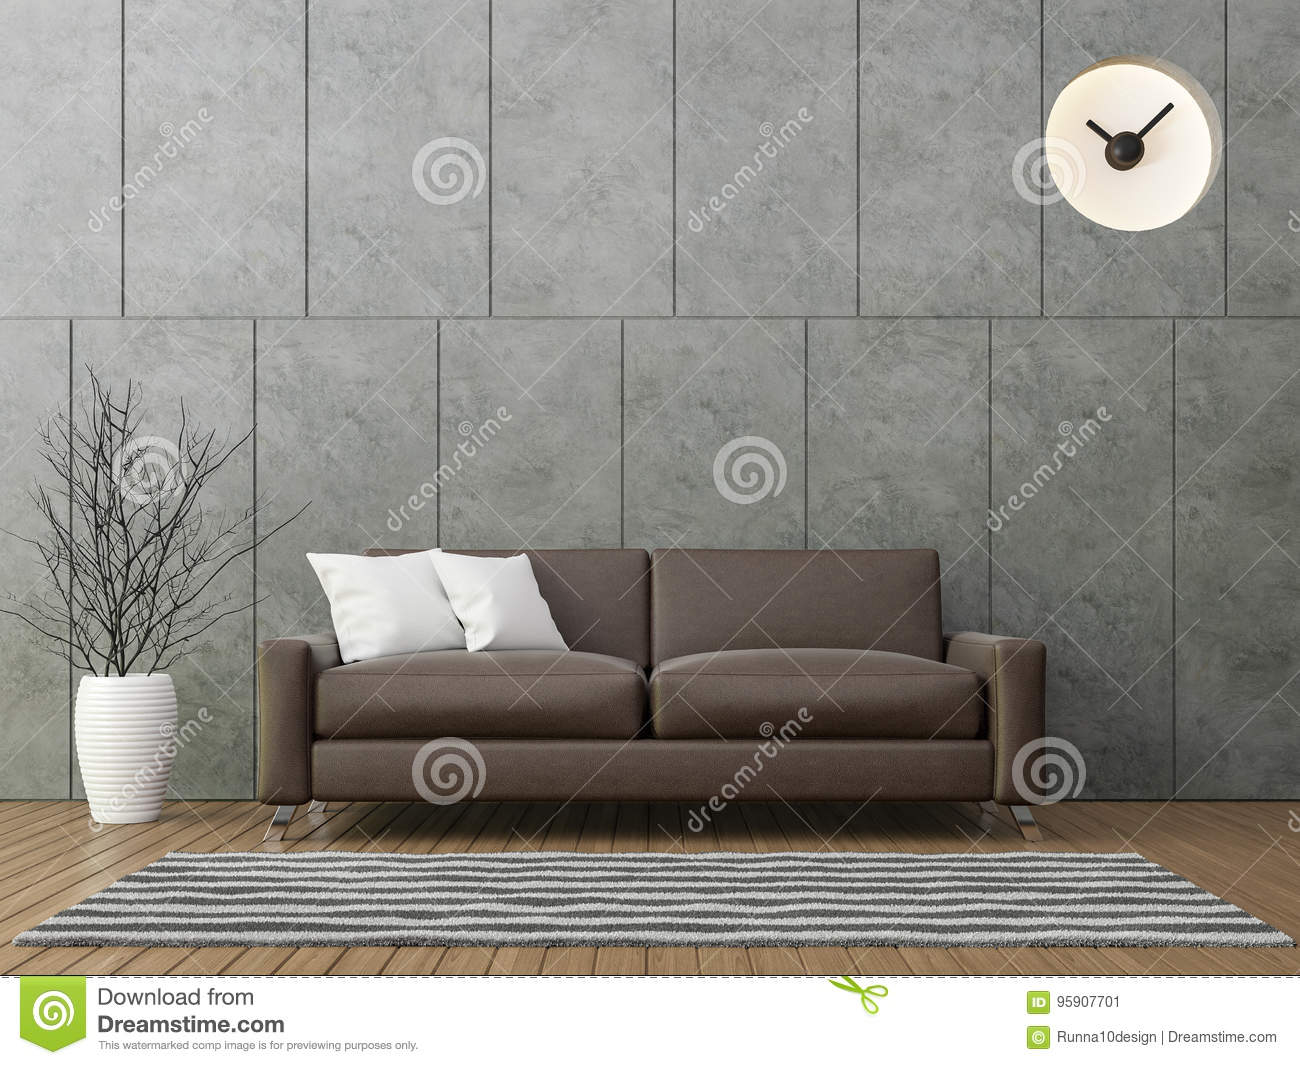 Modern Loft Living With Brown Leather Sofa 3d Rendering Image There Is A Polished  Concrete Wall With Groove Wood Floors And Decorate Wall With Hiding Clock